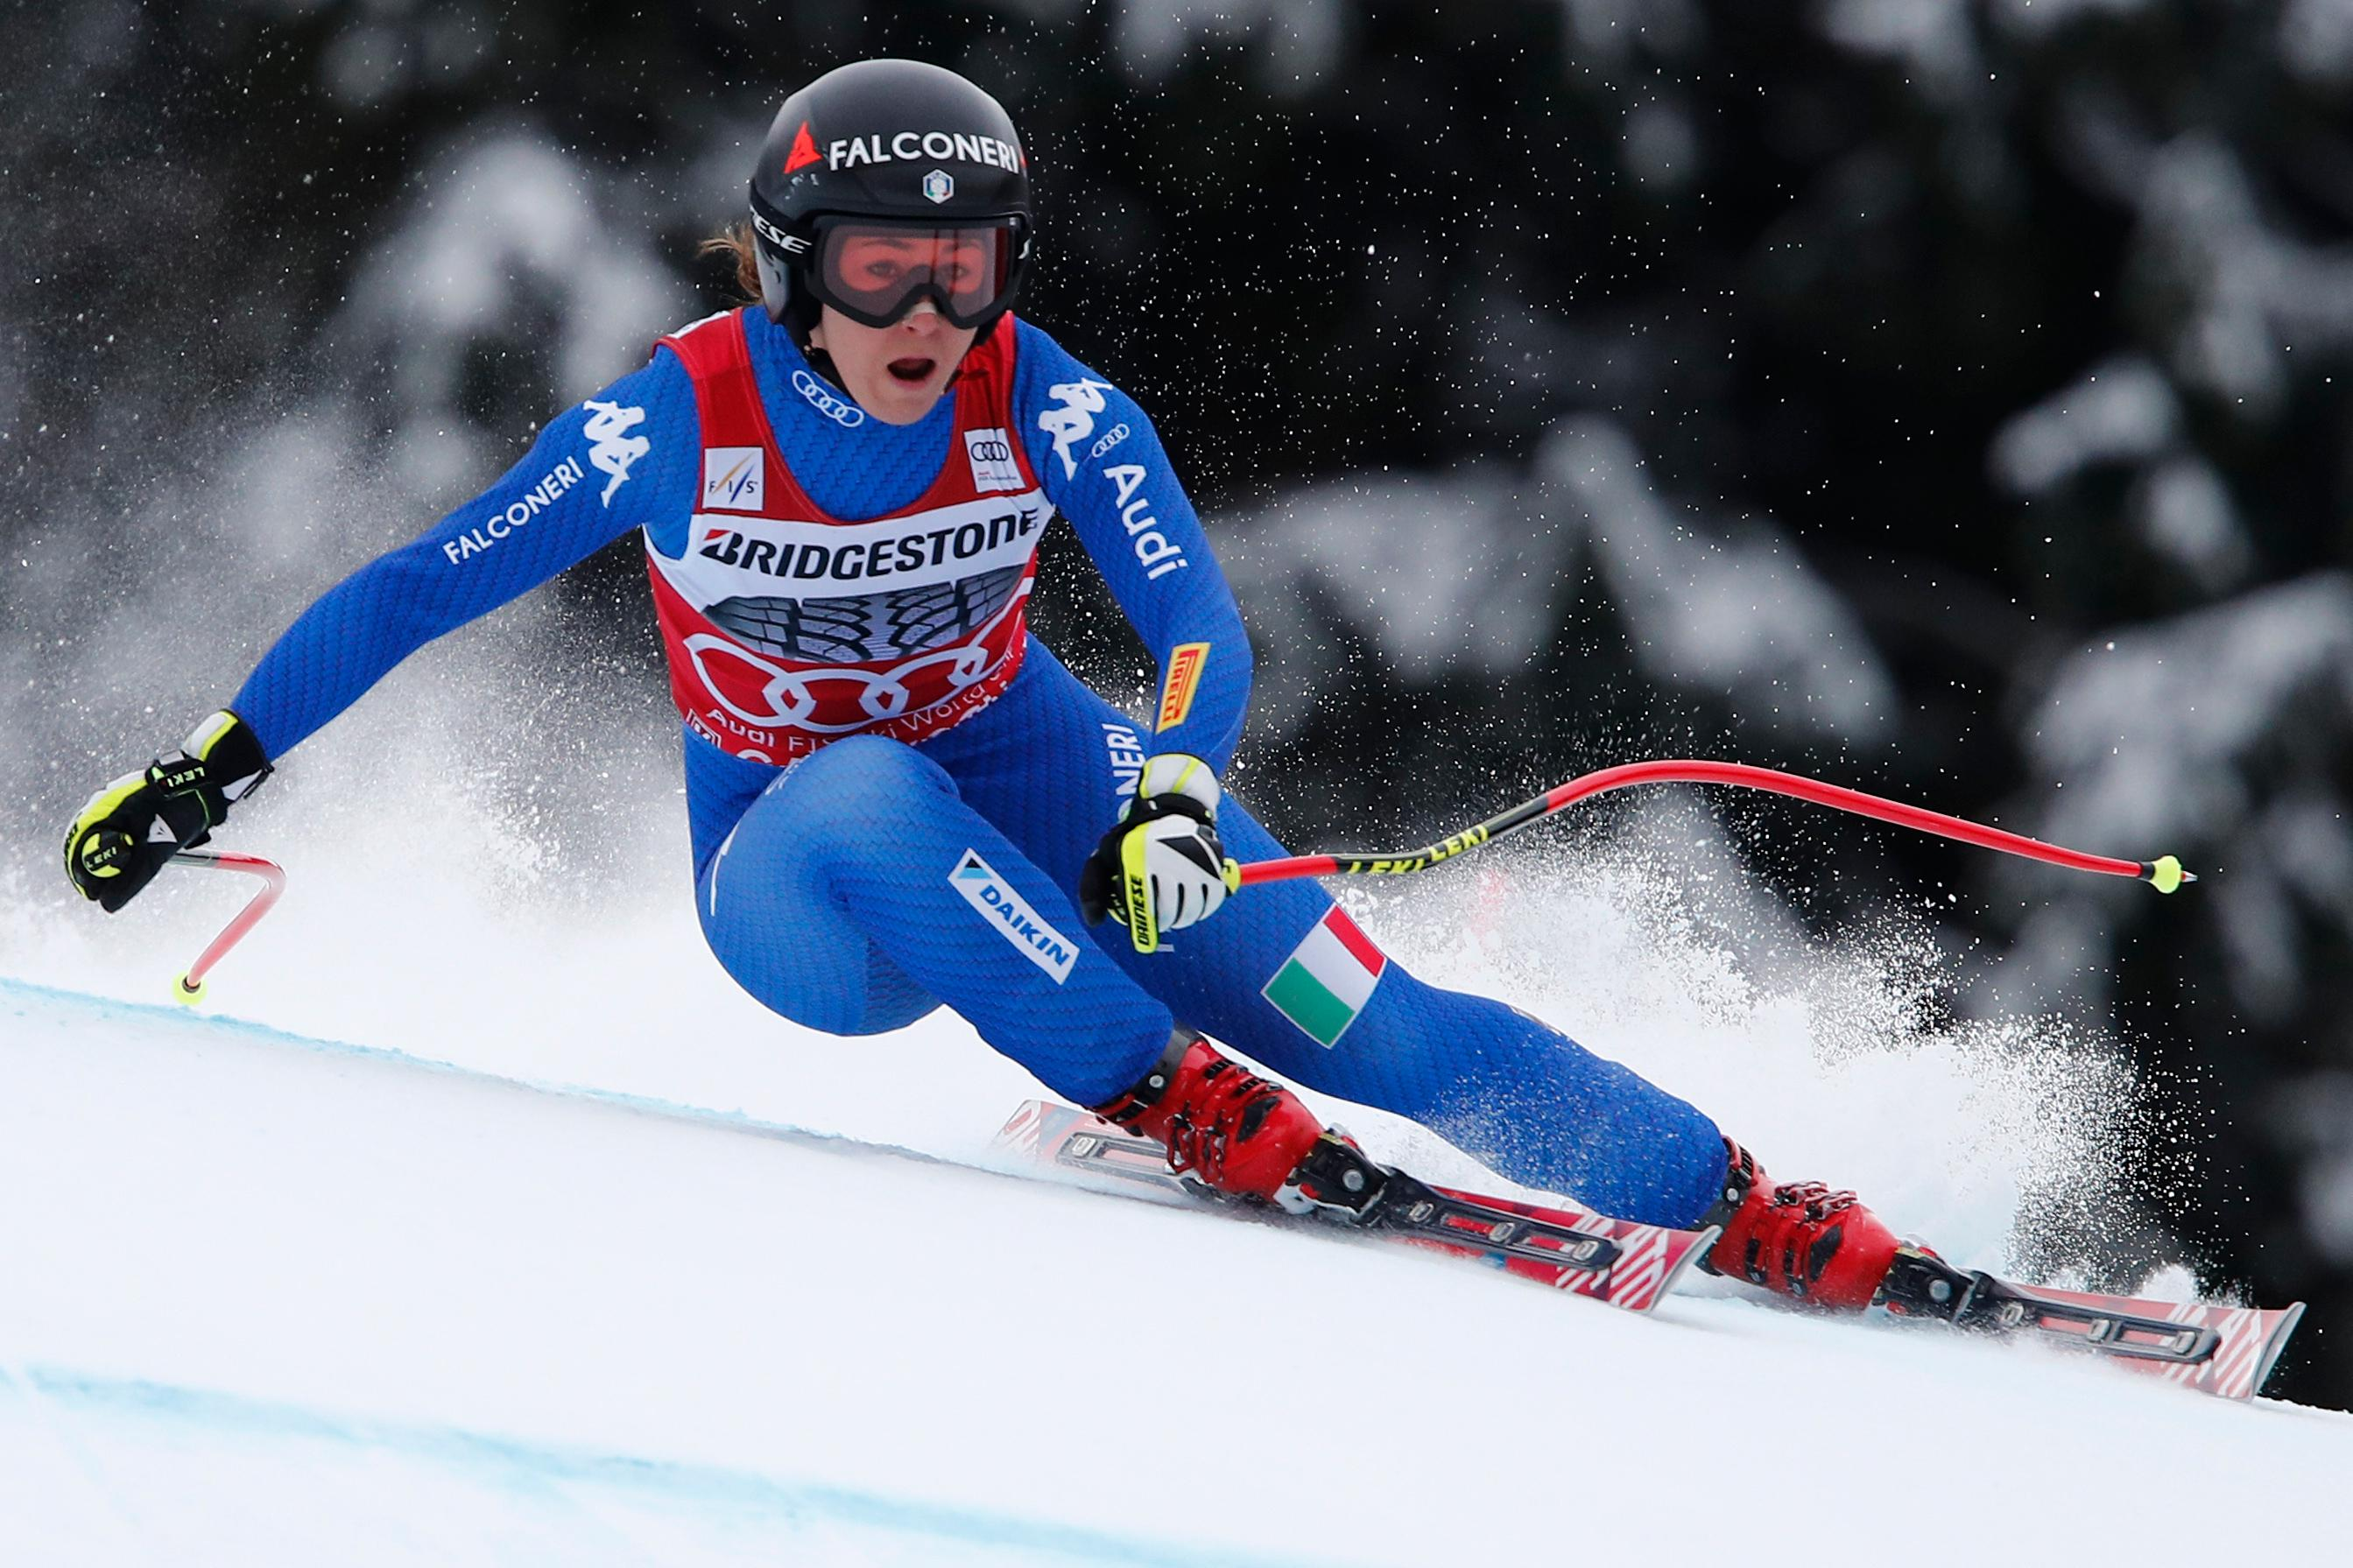 File- This Feb. 3, 2018, file photo shows Italy's Sofia Goggia competing during an alpine ski, women's world Cup downhill race, in Garmisch Partenkirchen, Germany.  The Olympic speed courses at Jeongseon were raced just once on each World Cup circuit. In the women's test race last year, Goggia beat Lindsey Vonn of the U.S. on a slightly different course setting.  (AP Photo/Gabriele Facciotti, File)